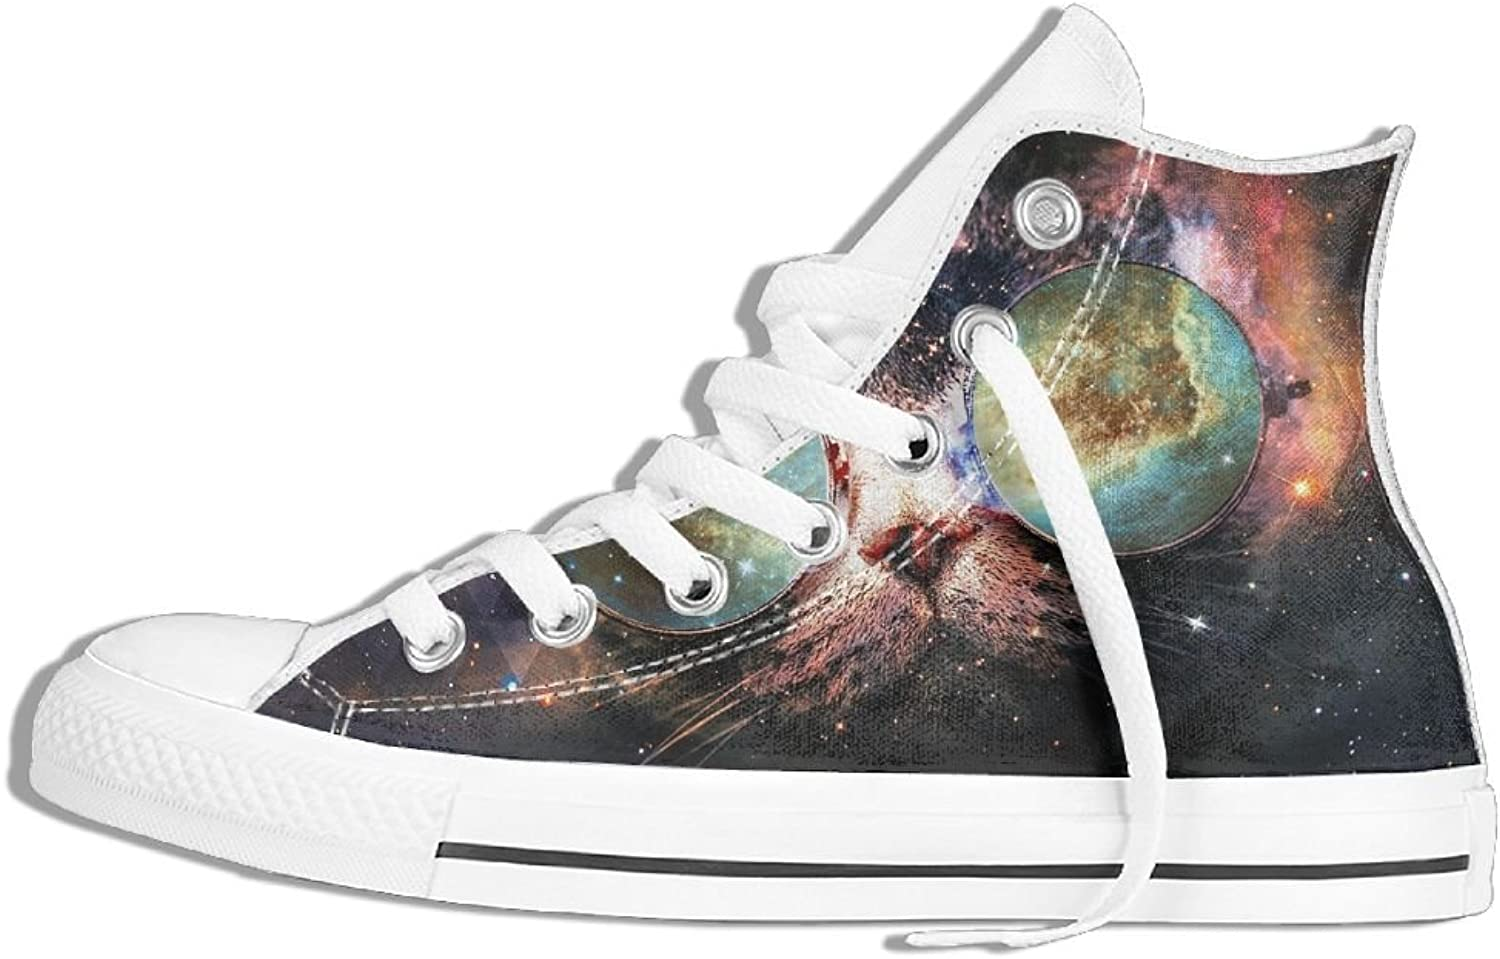 Unisex Hi-Top Canvas Sneakers Space Sunglasses Cat Round Toe Non-slip Sports Trainers shoes